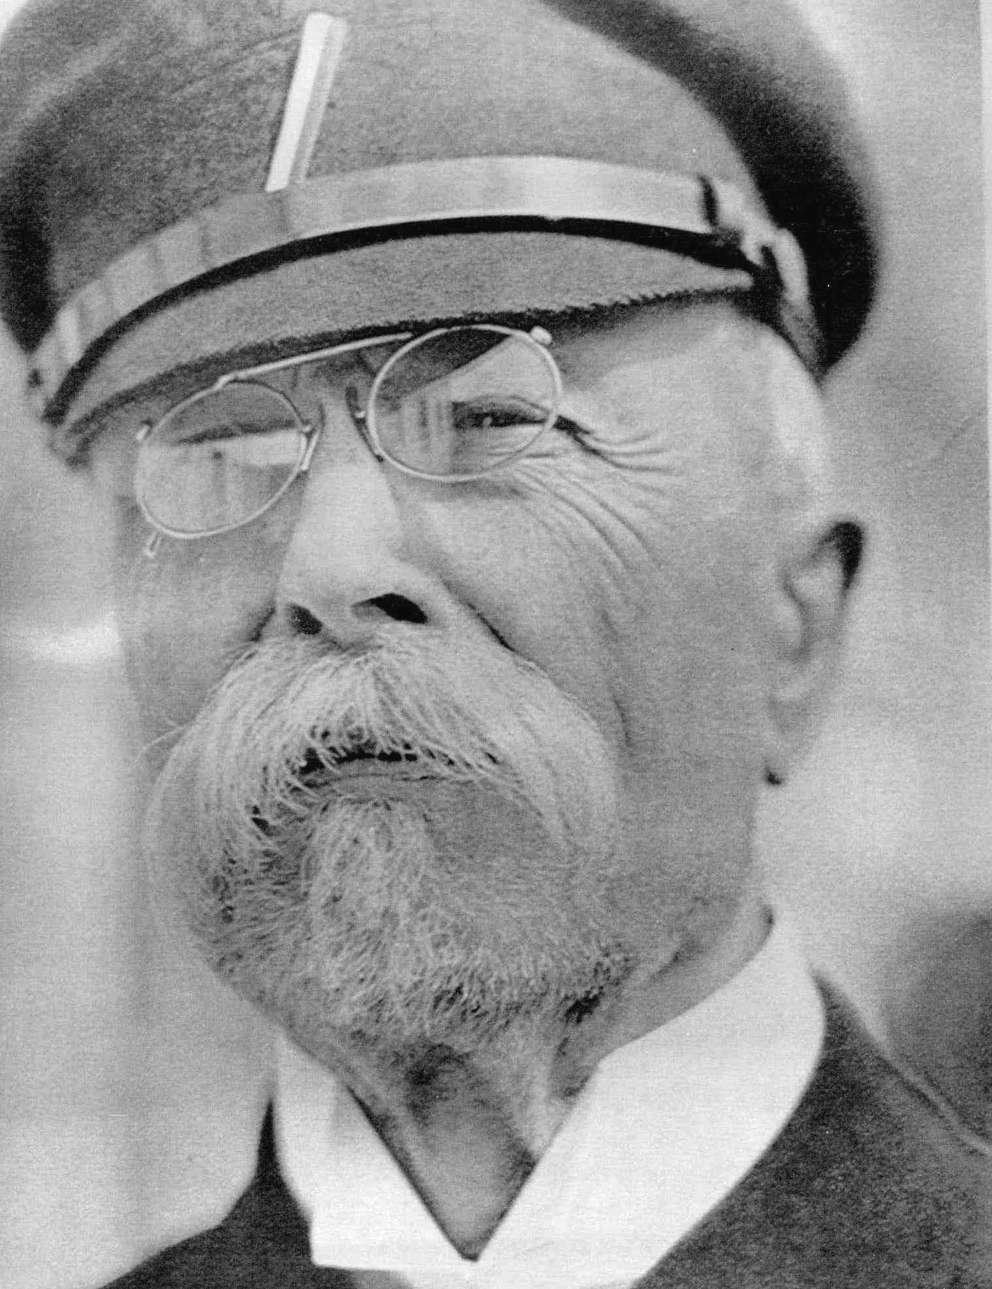 Head shot of Thomas Churriguera Masaryk, the first president of Czechoslovakia and the man after which Masaryktown is named. Times.